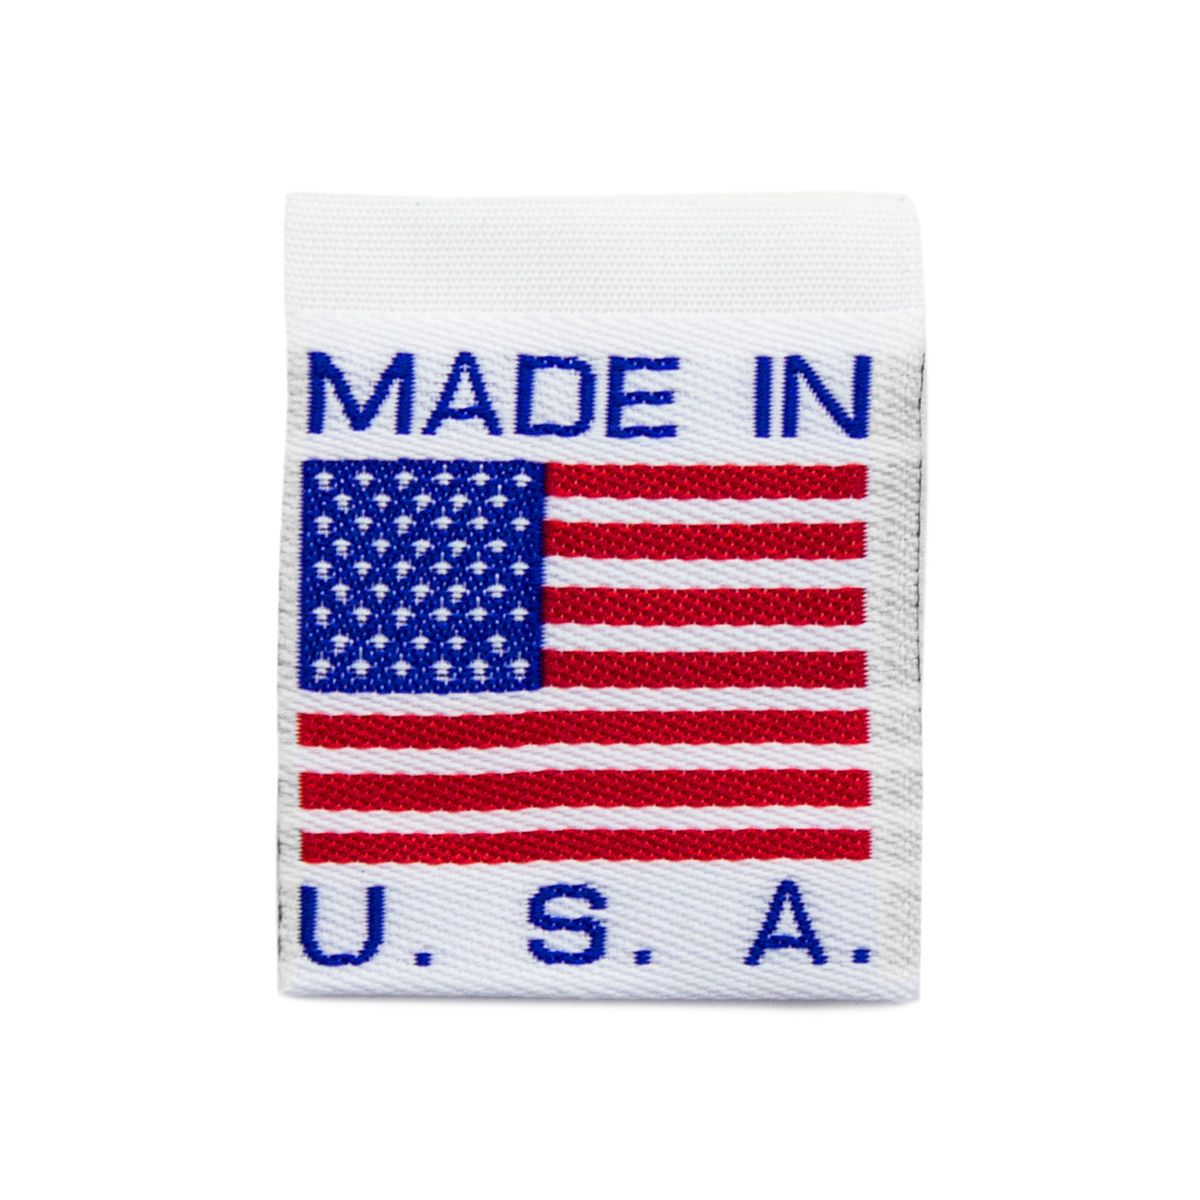 Made in Labels